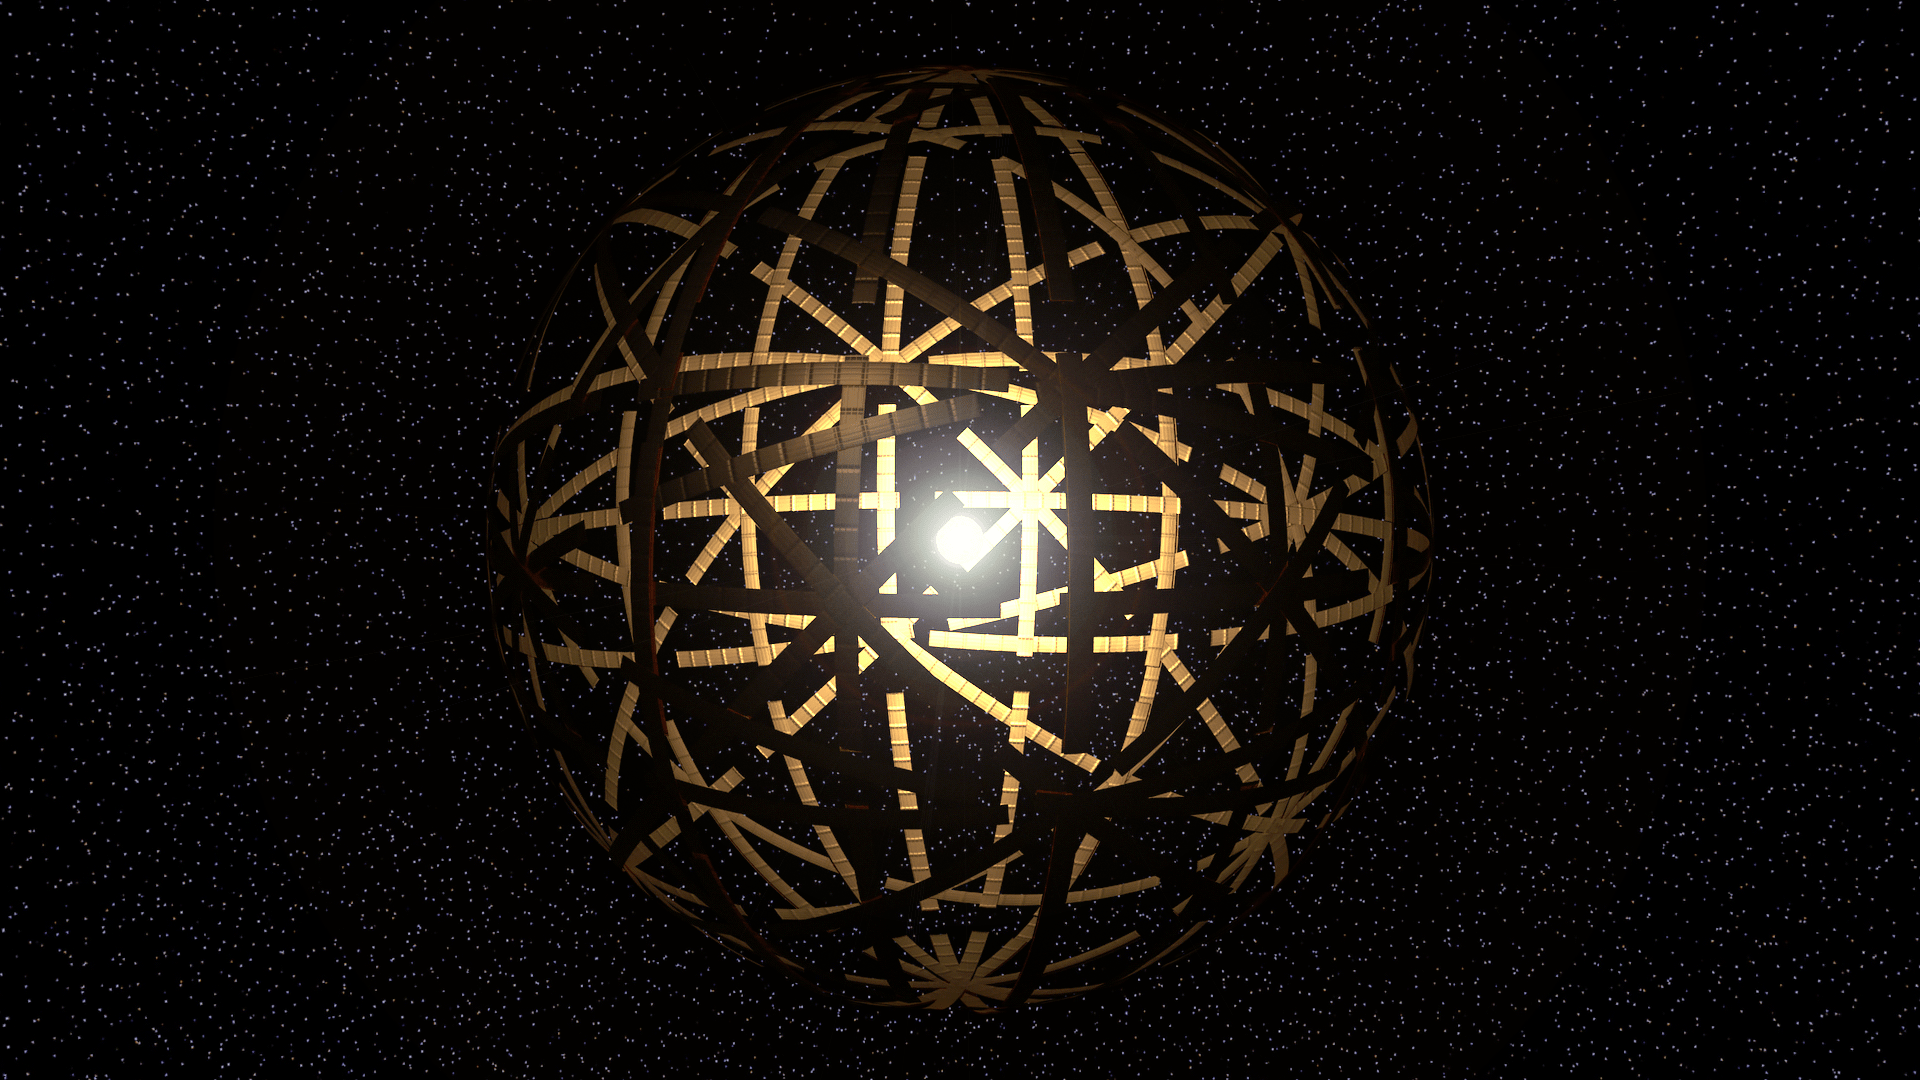 Dyson Sphere by Kevin Gill